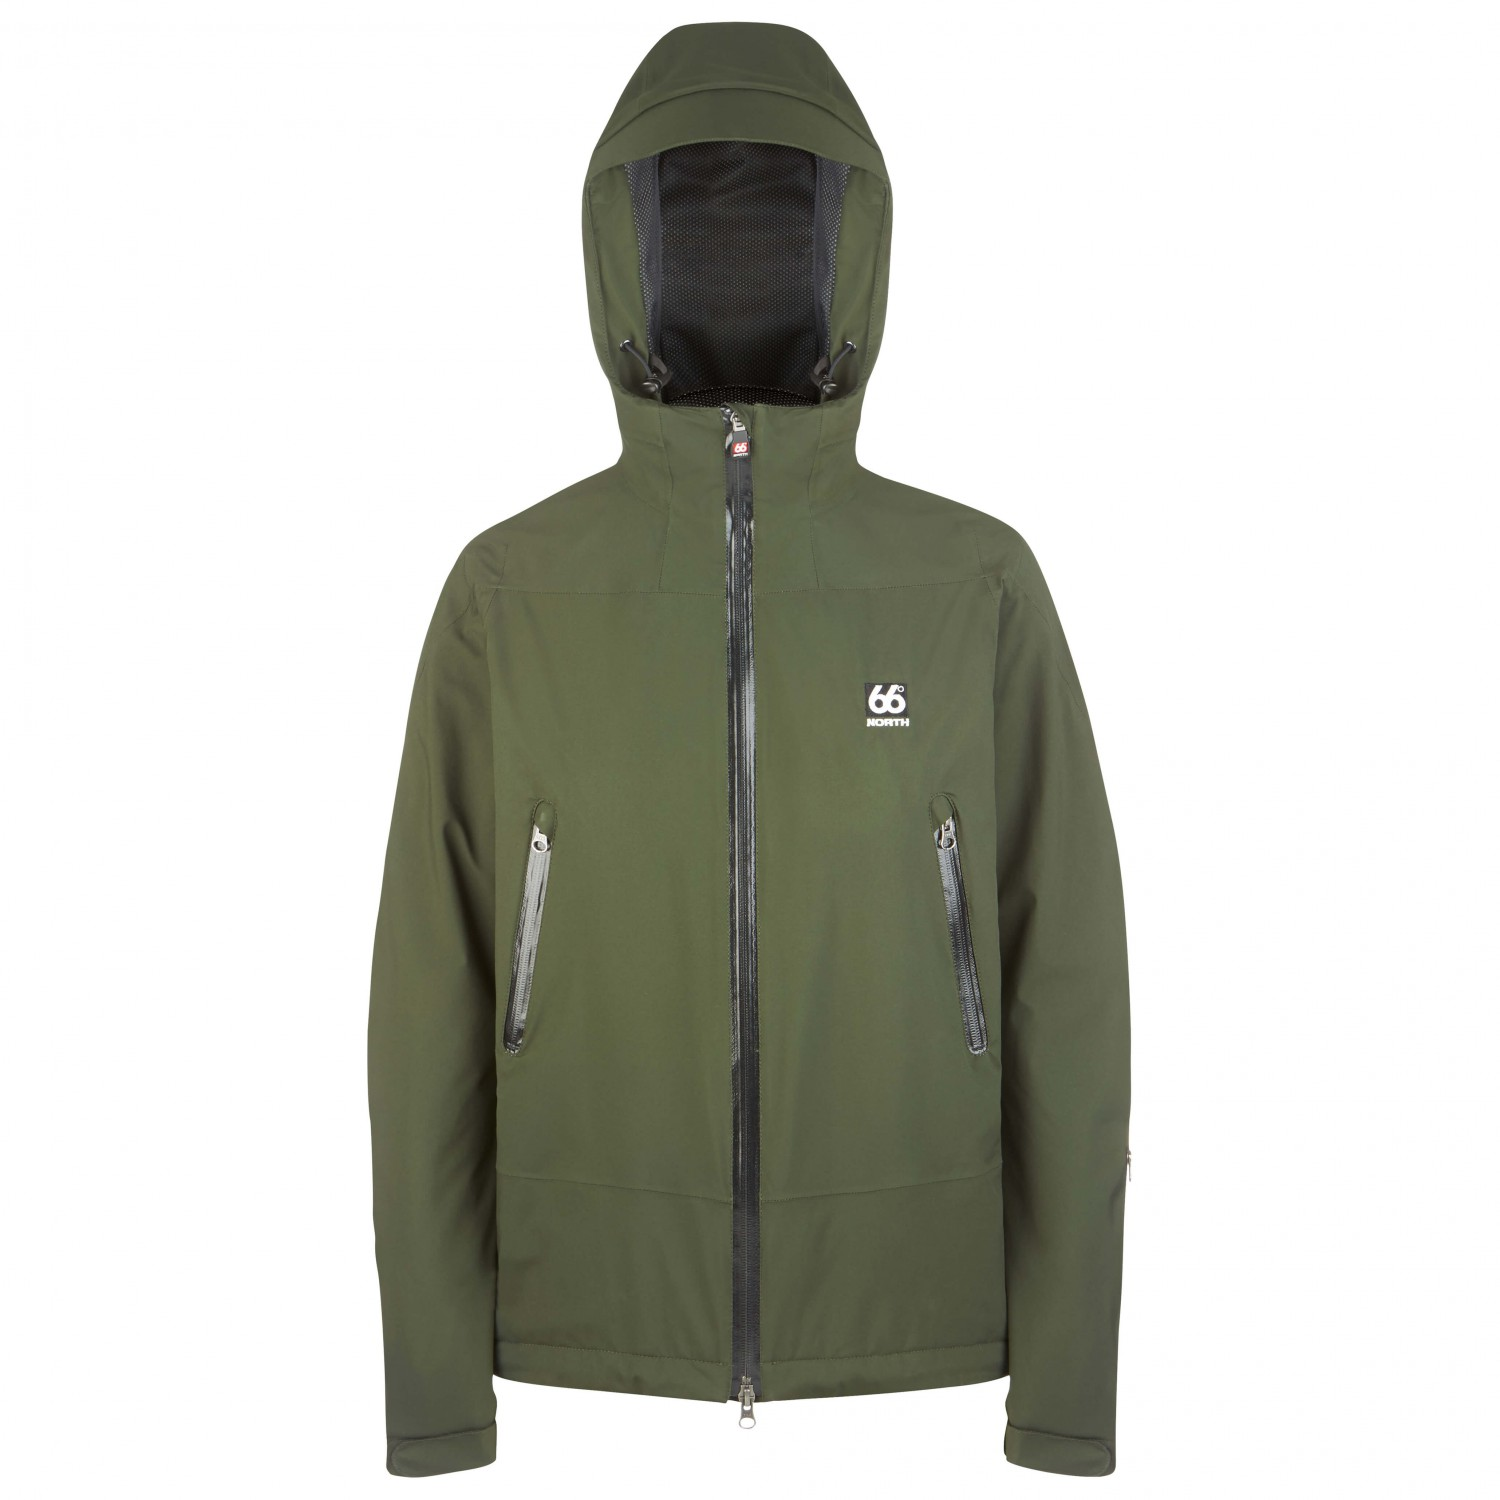 66 NORTH Snaefell Down Parka: : Bekleidung